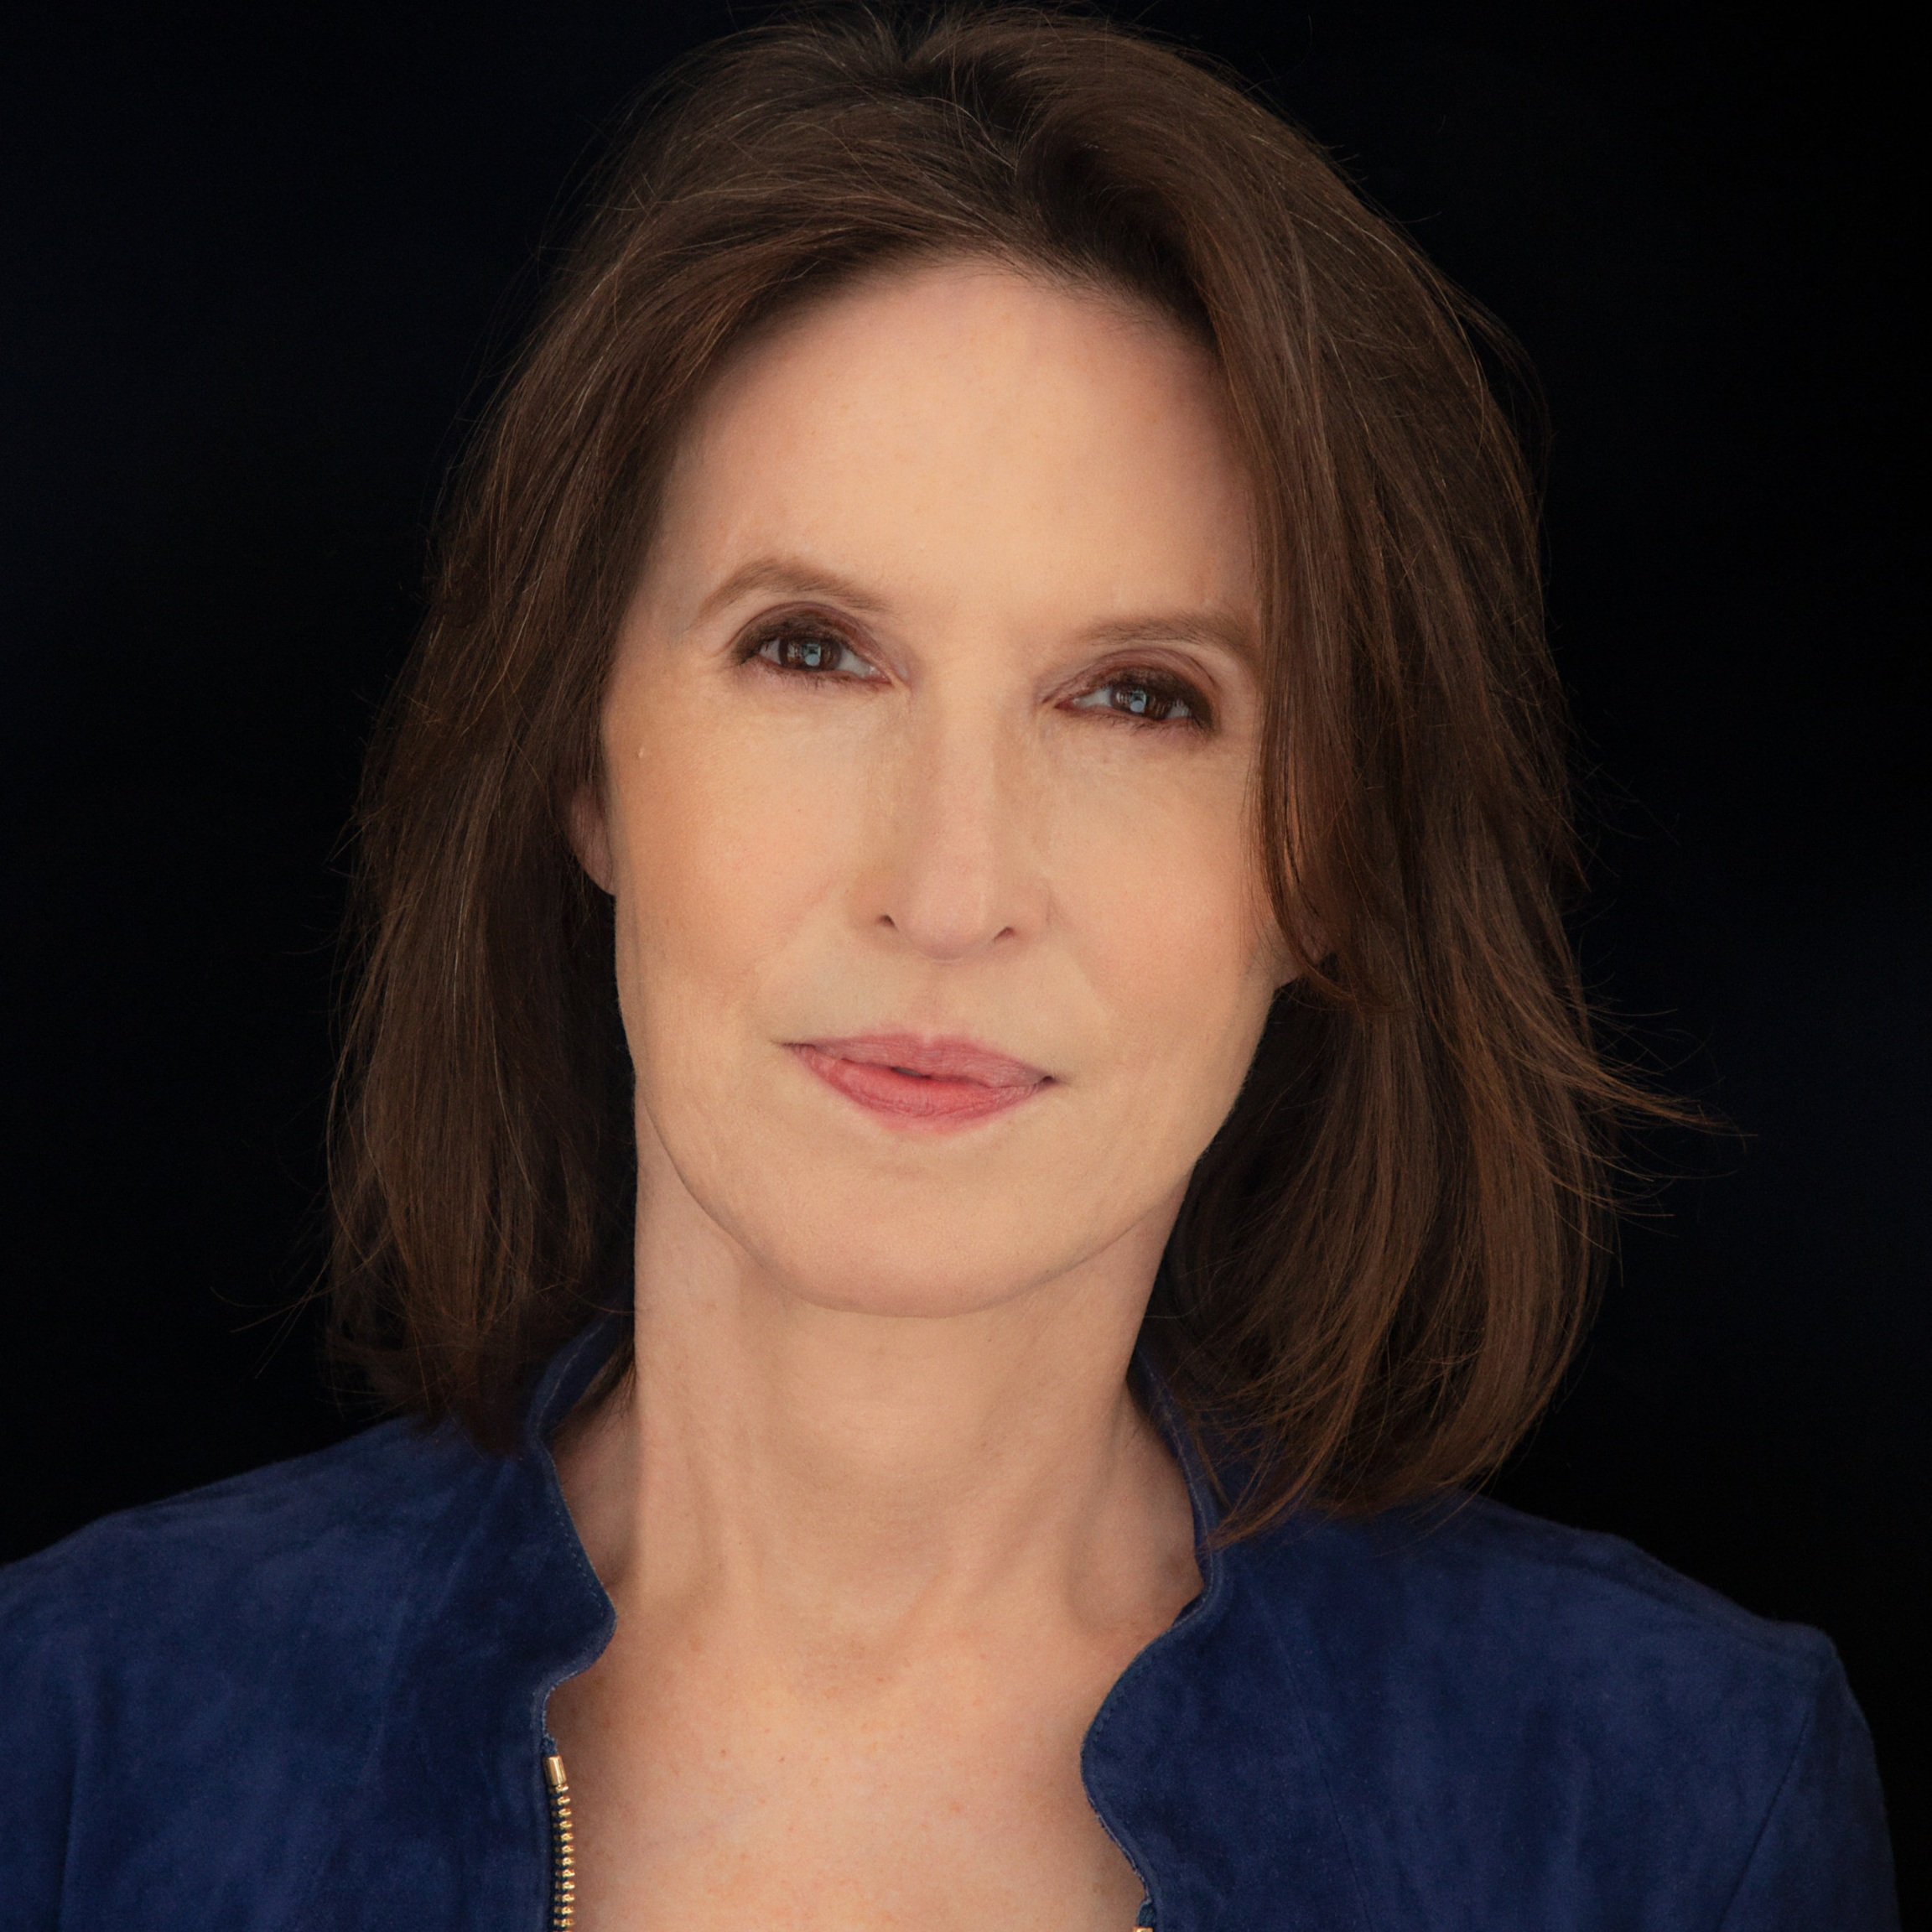 Katrina vanden Heuvel, The Nation